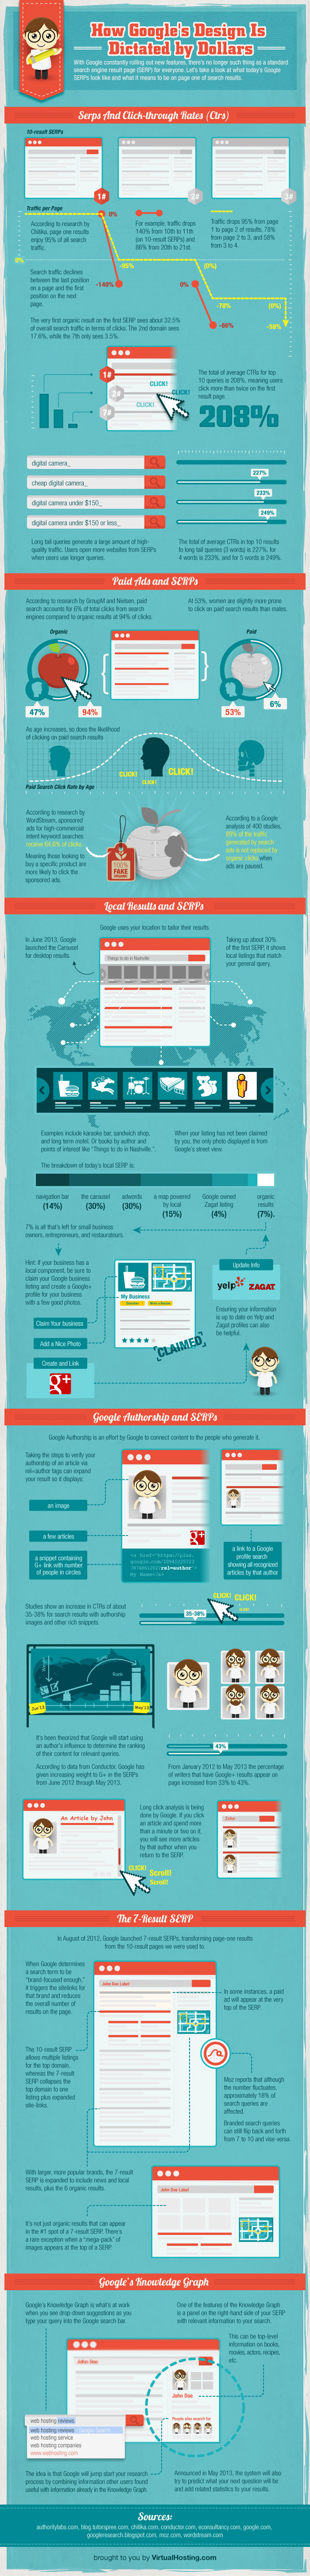 How Google's Design is Dictated by Dollars (Infographic)